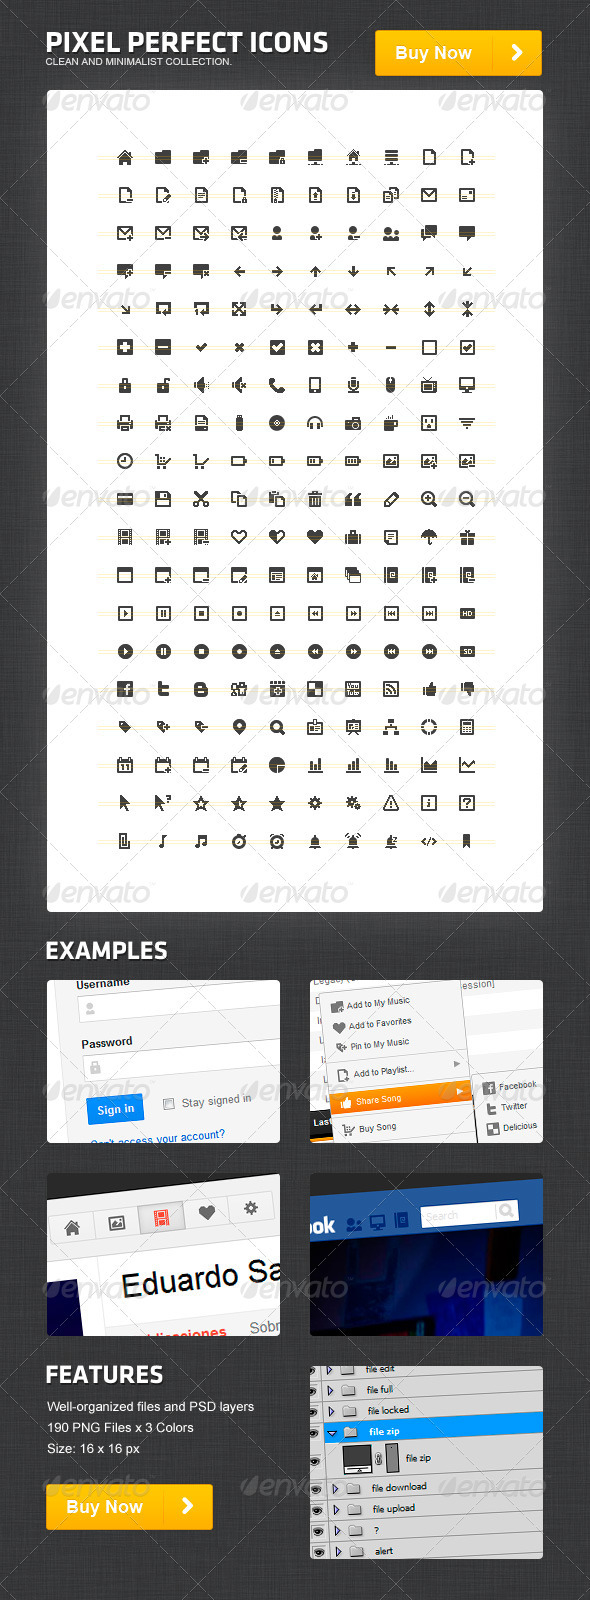 Pixel Perfect Icons - Web Icons